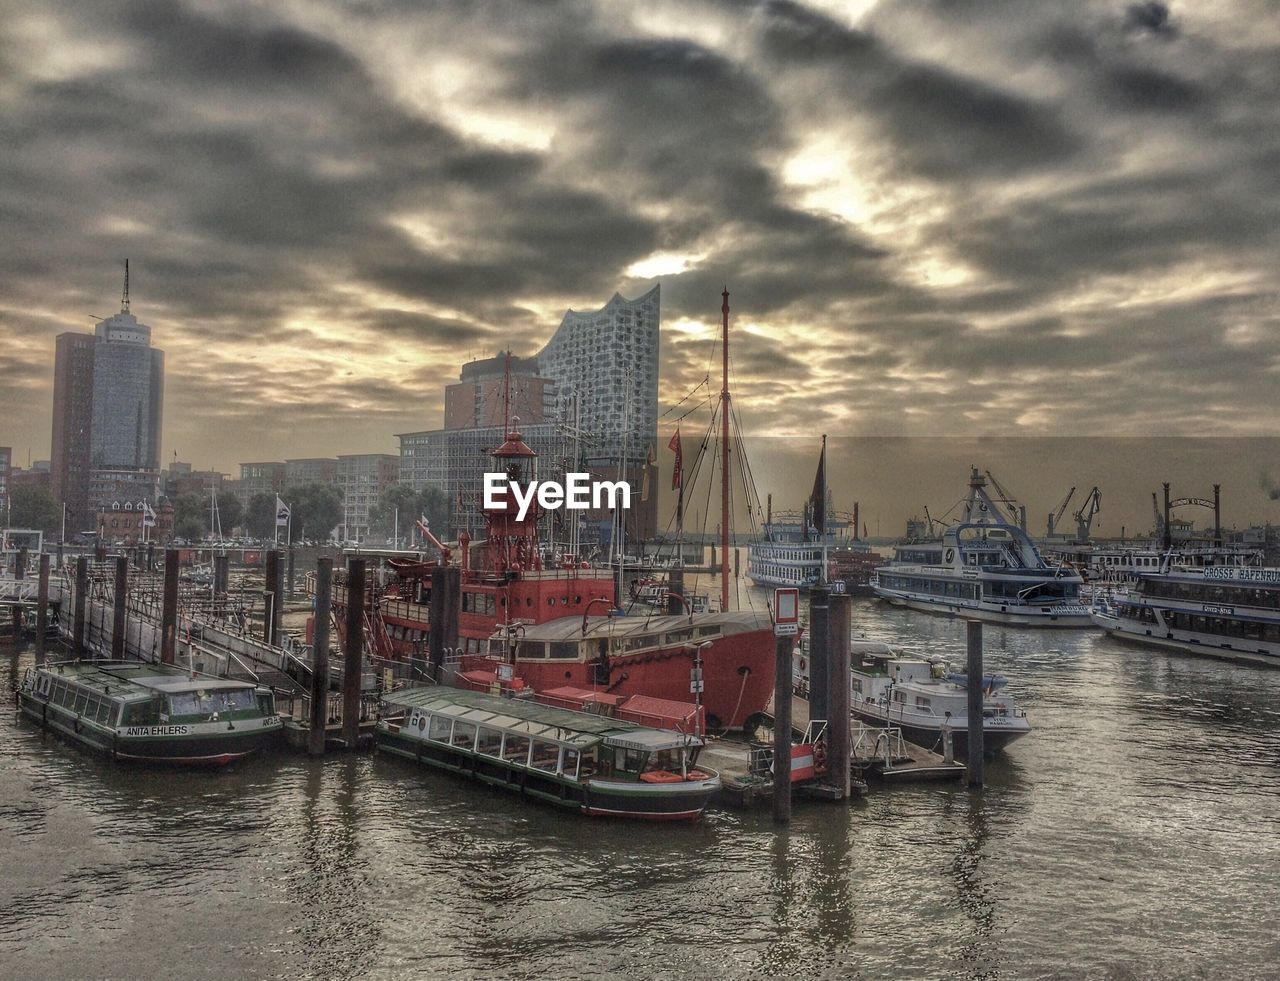 architecture, sky, city, built structure, transportation, water, building exterior, skyscraper, nautical vessel, no people, cloud - sky, travel destinations, river, harbor, modern, outdoors, cityscape, day